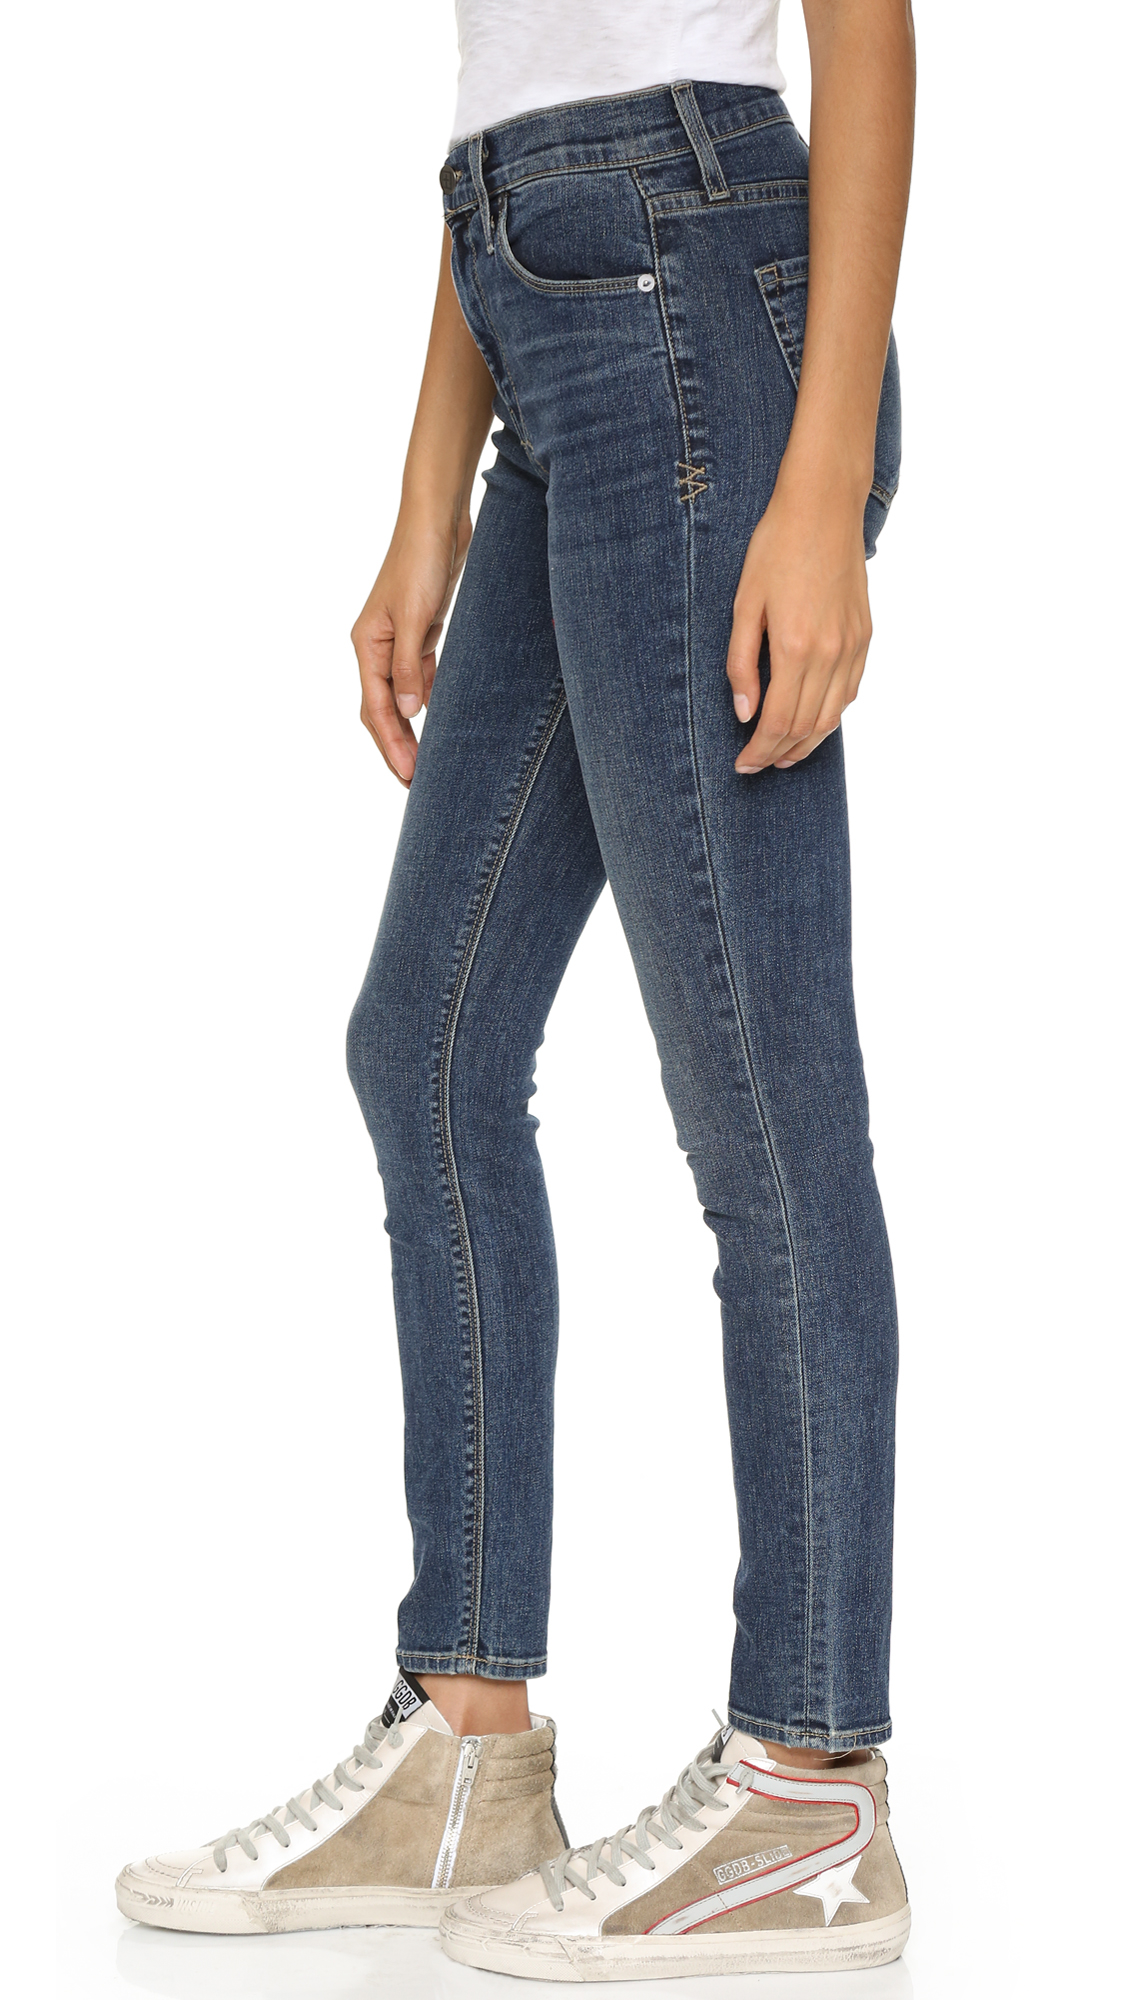 High Rise Jeans For Women